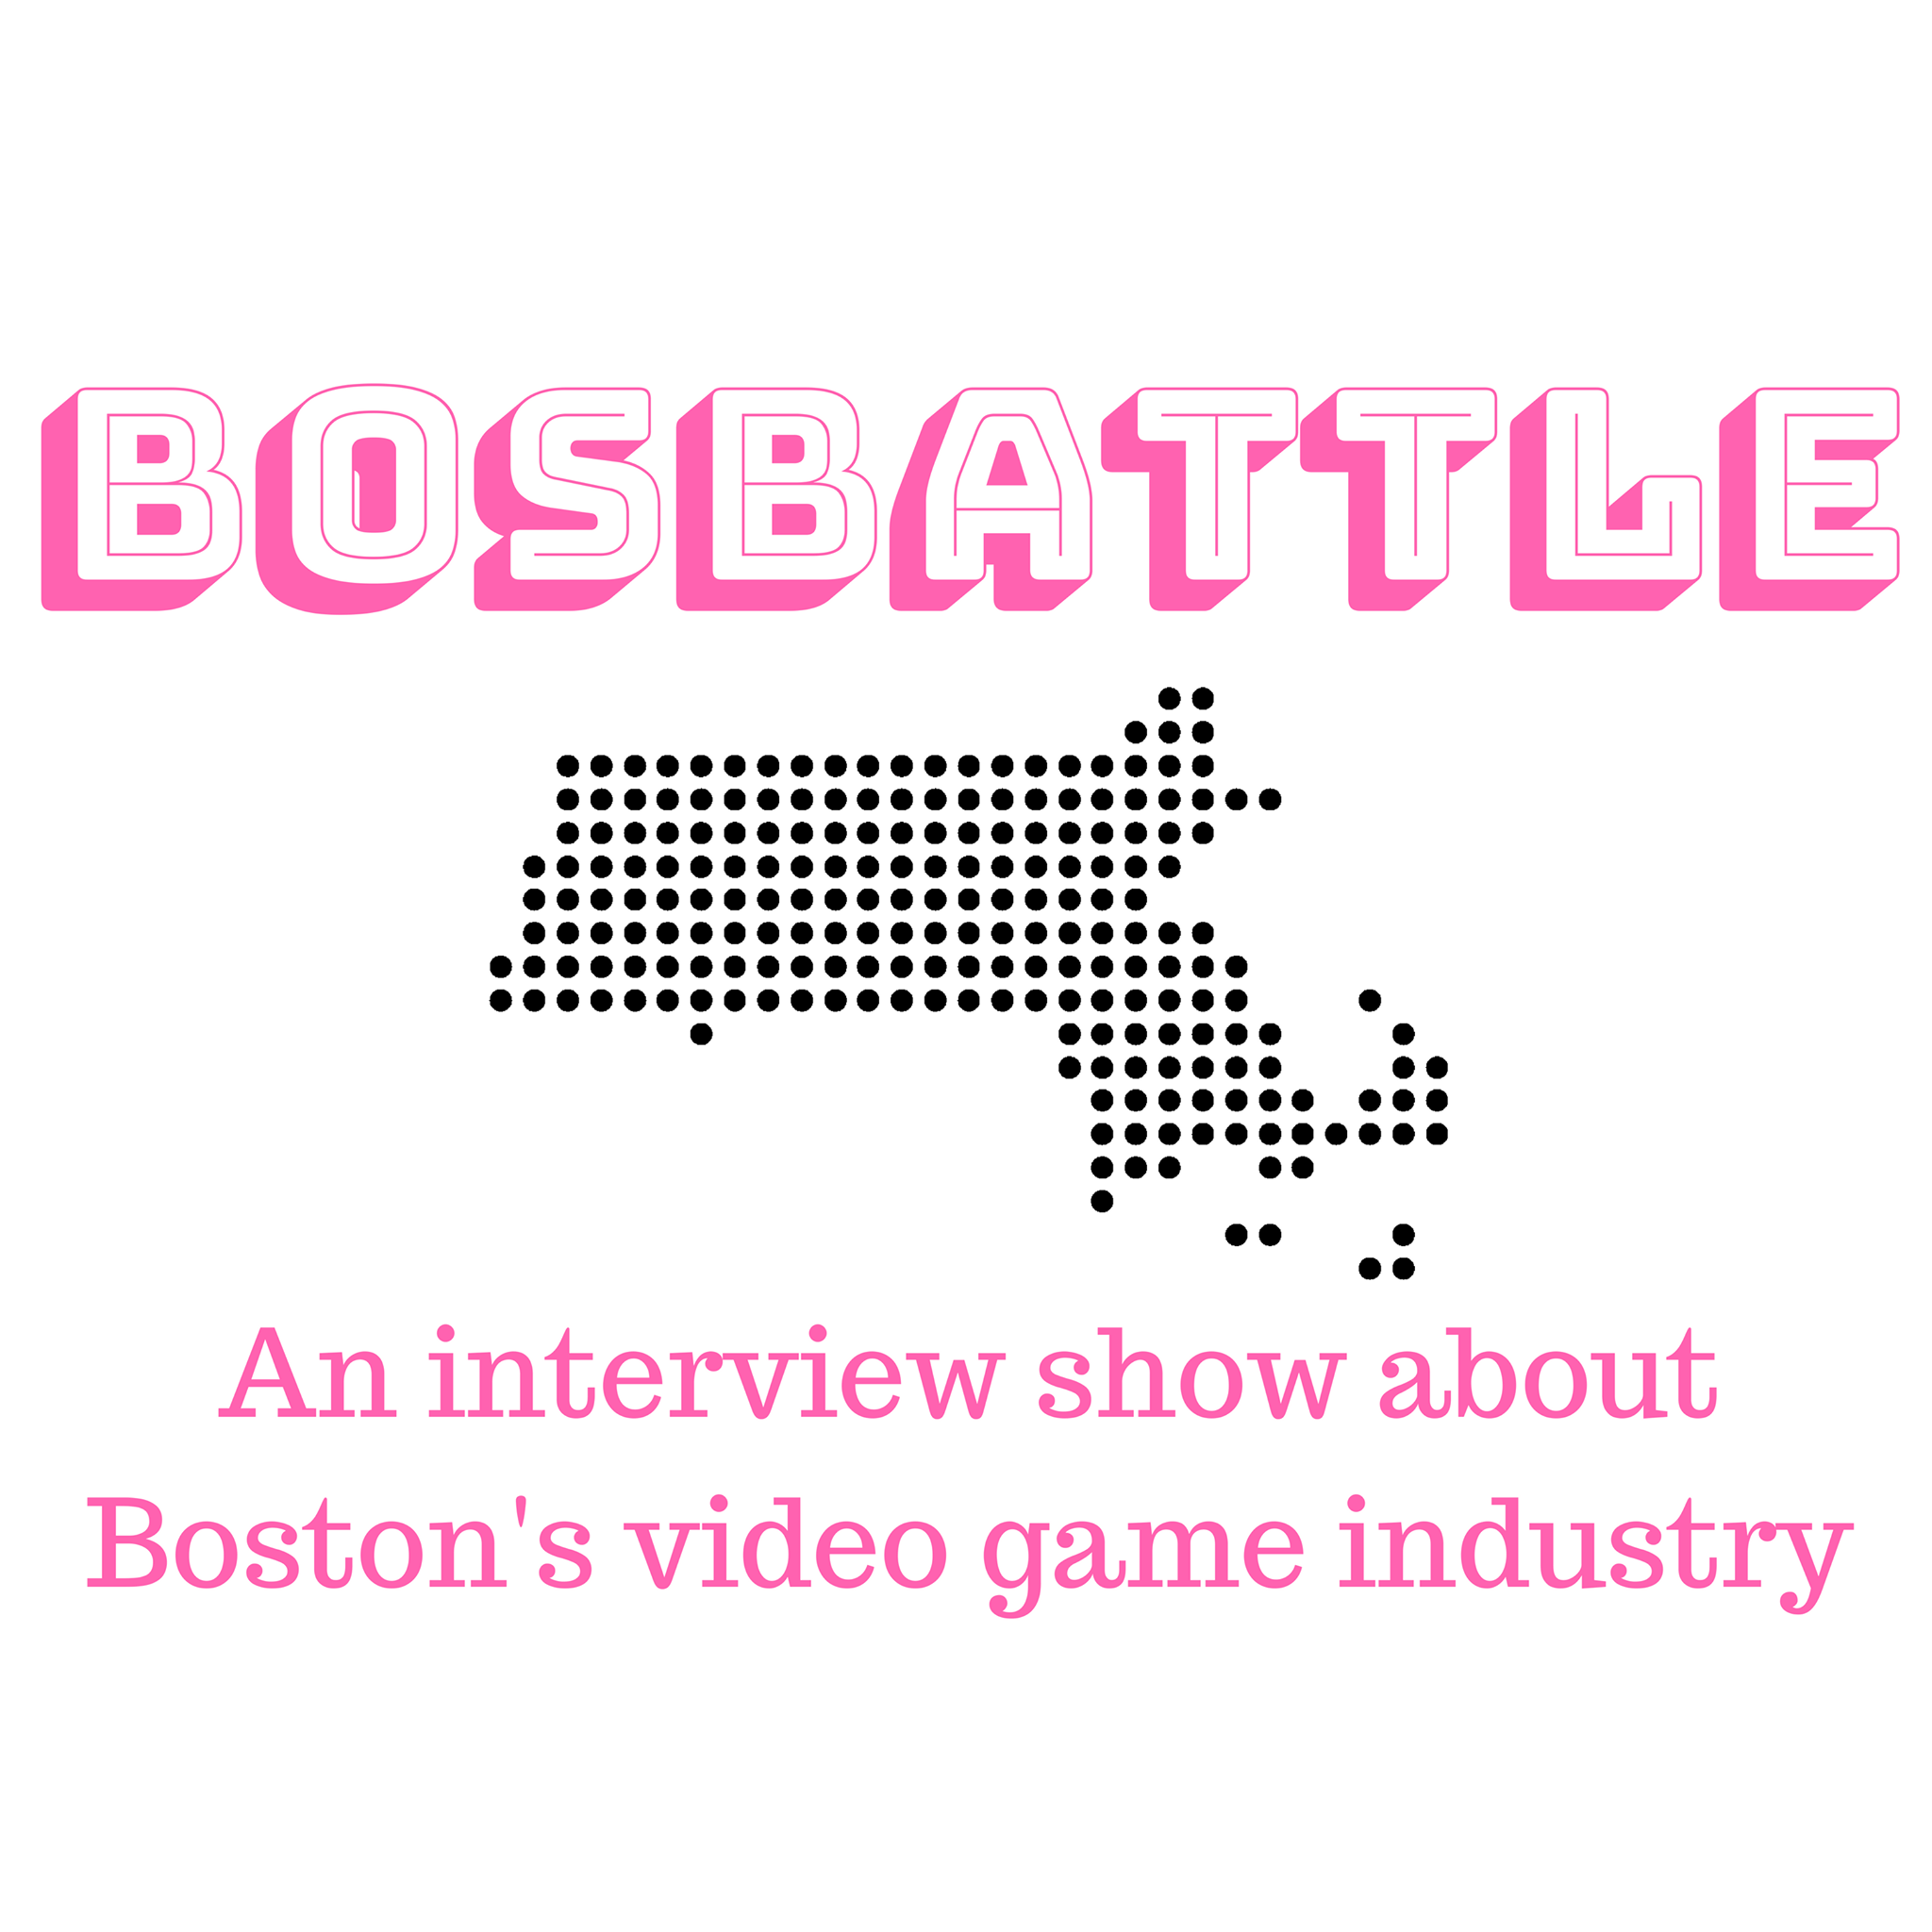 BosBattle Podcast - I serve as mixing and mastering engineer for BosBattle, a podcast hosted by Dylan Martin and Stephanie MacDonald about the Boston video game industry that features in-depth interviews with the people who make or work with games in Greater Boston and beyond.